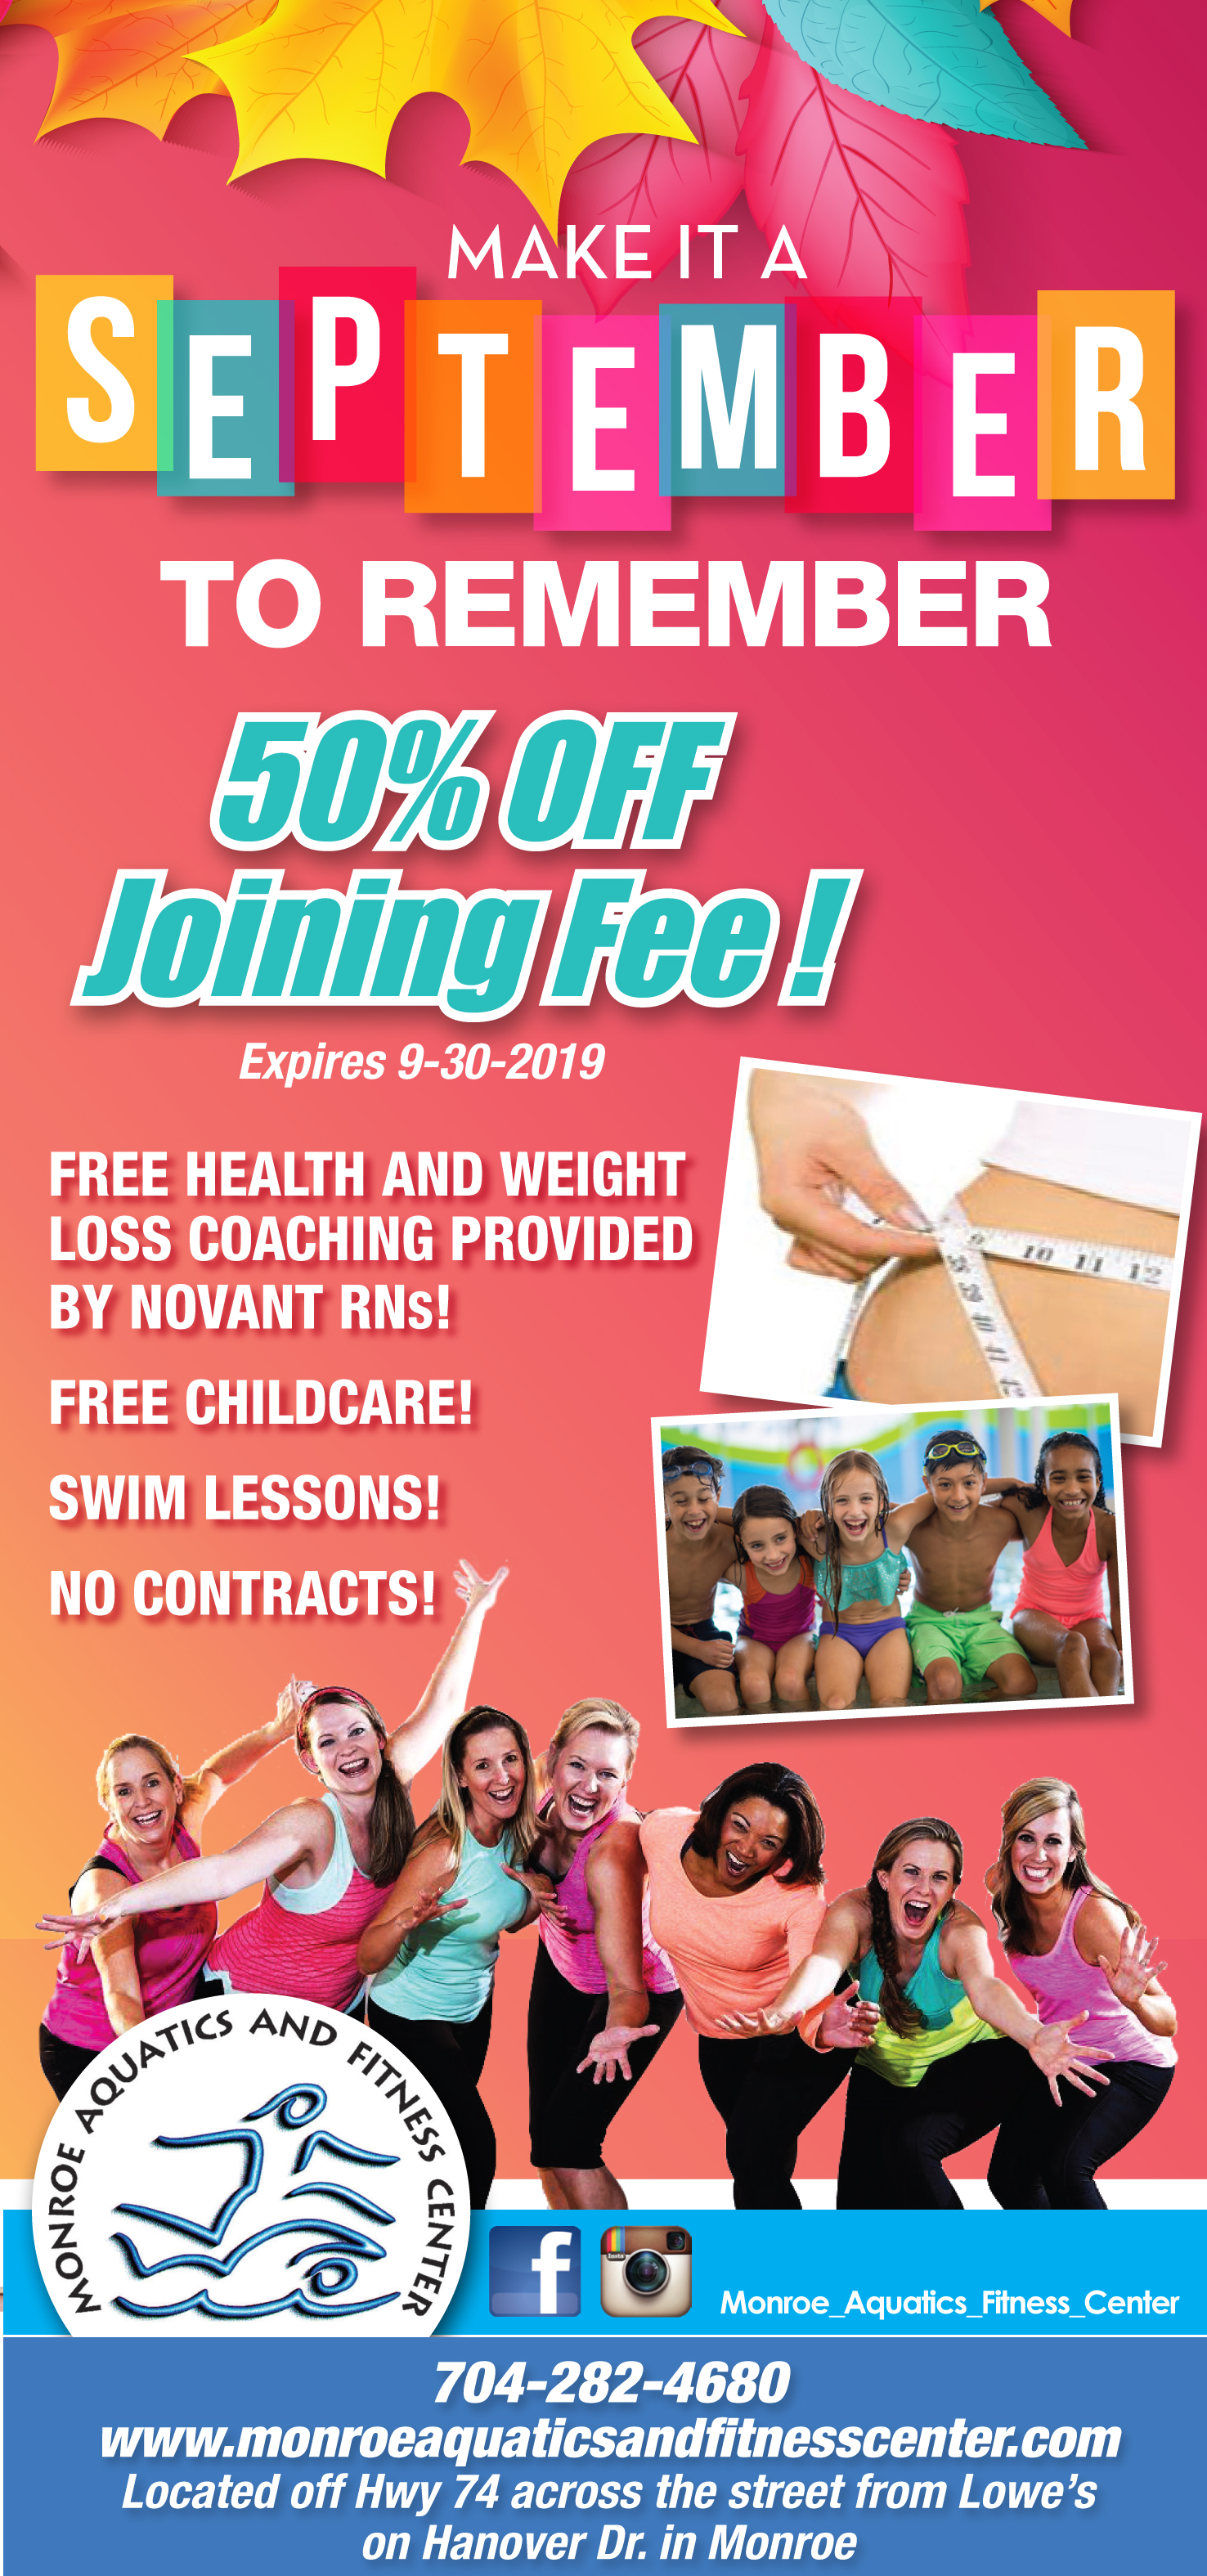 50% off September Joining Fee